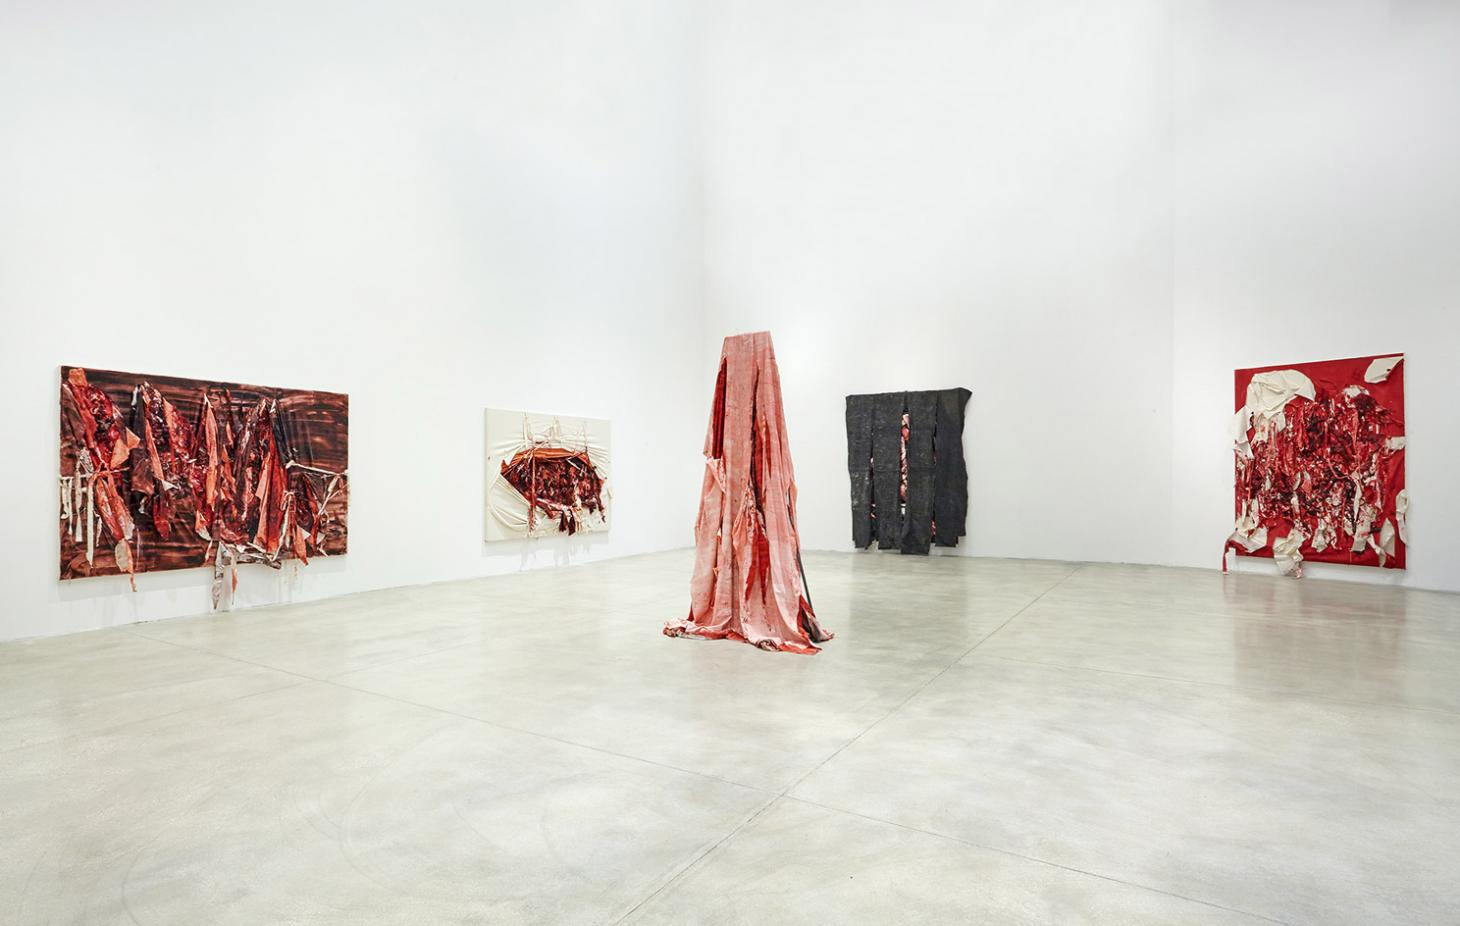 Sculptures and wall pieces seen in Anish Kapoor's 2016 exhibition at the Museo d'Arte Contemporanea Roma